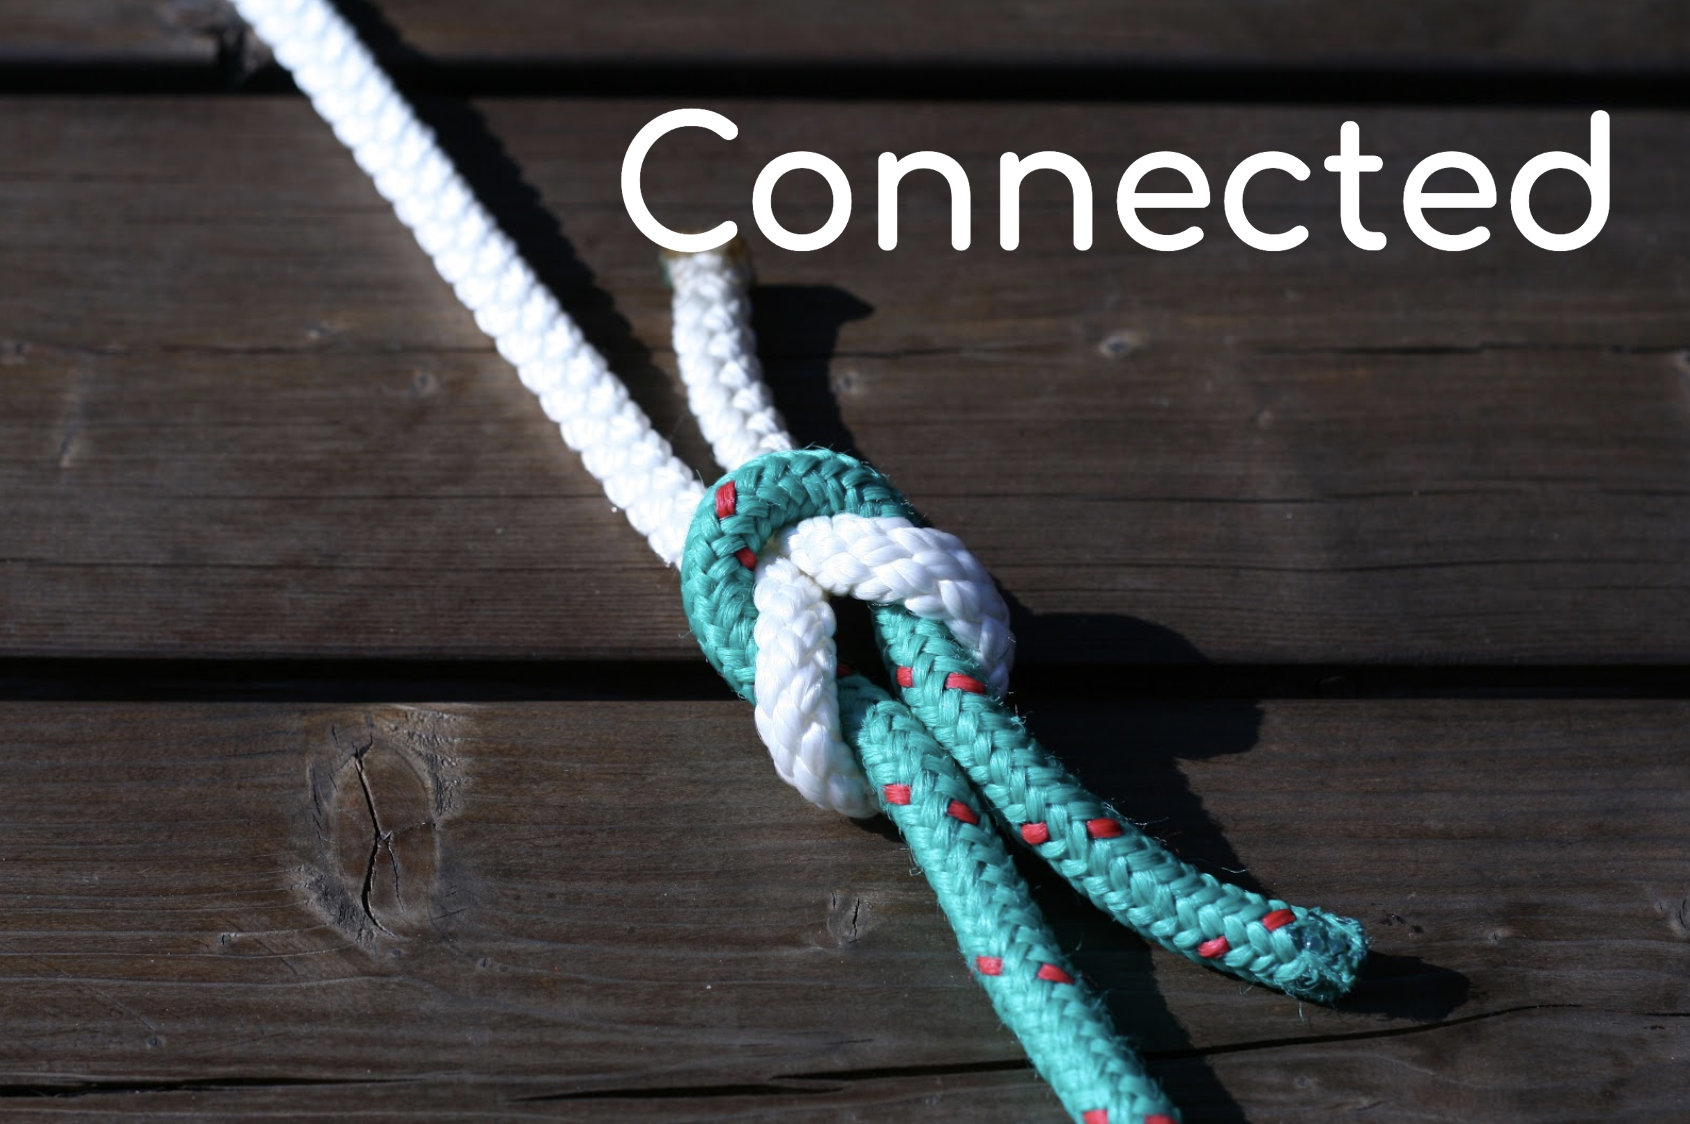 Photo of rope knotted, caption stating Connected.